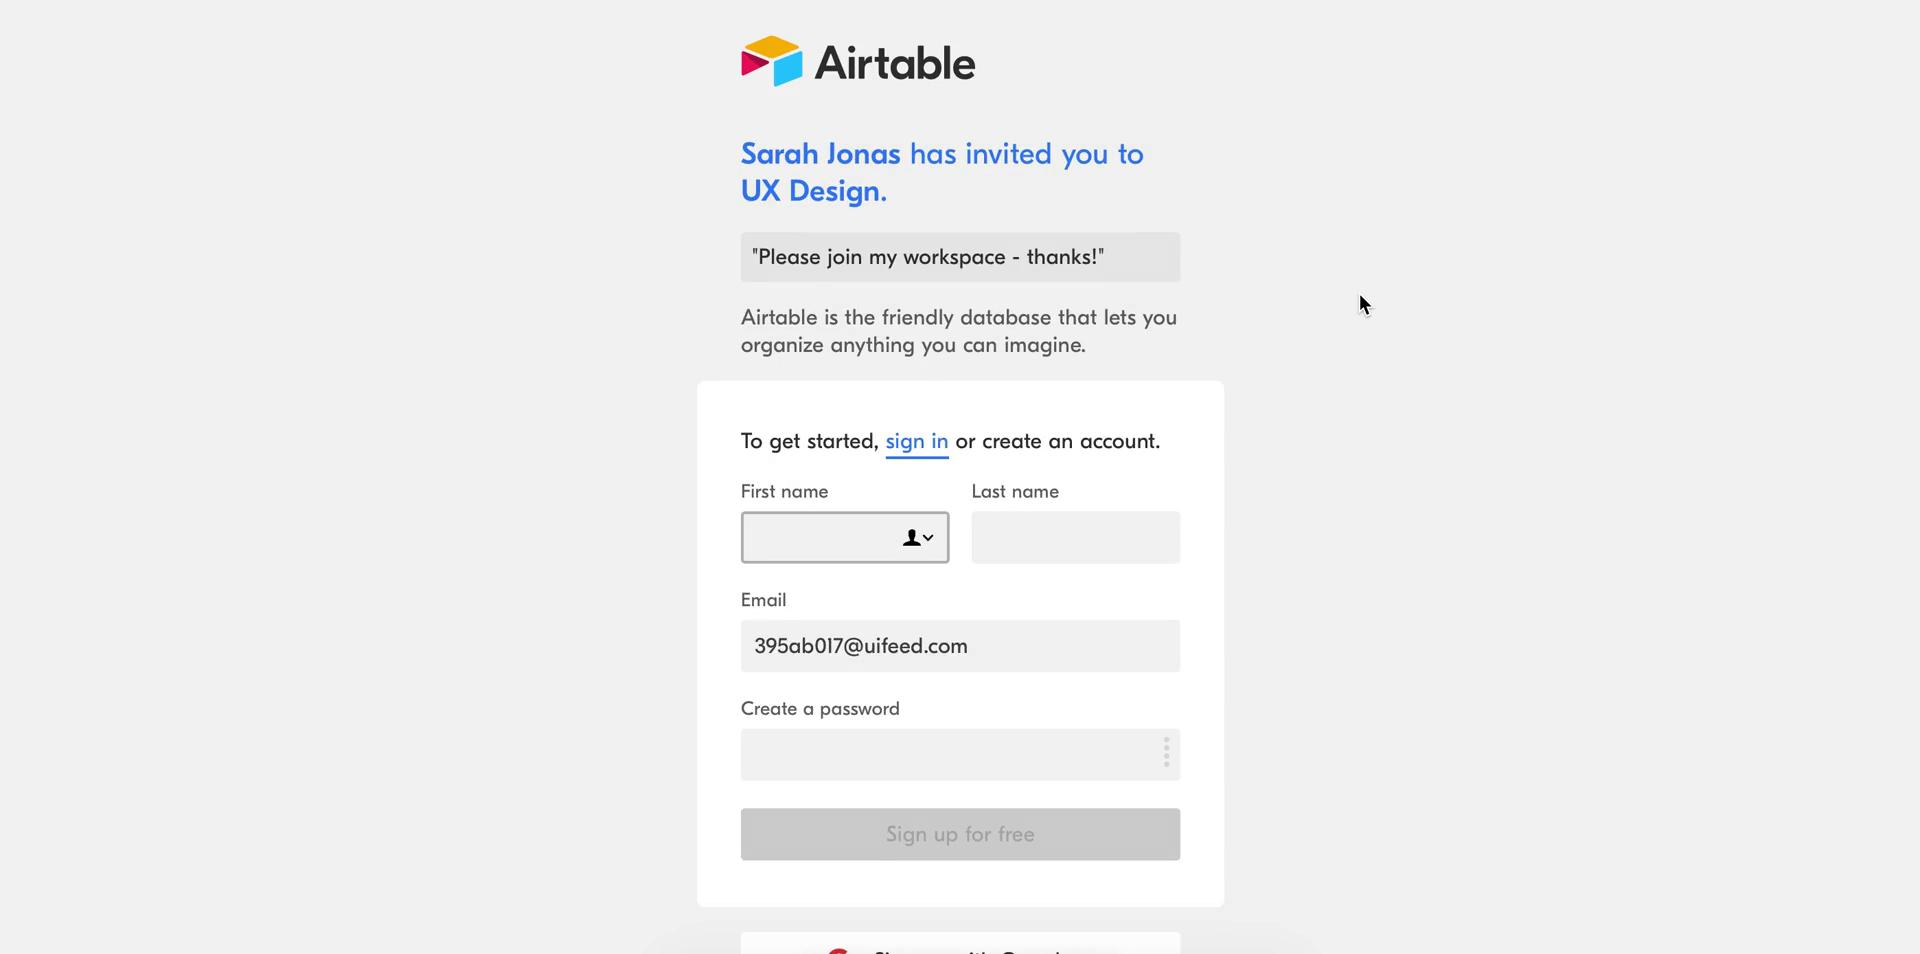 The sign up page for someone invited to Airtable